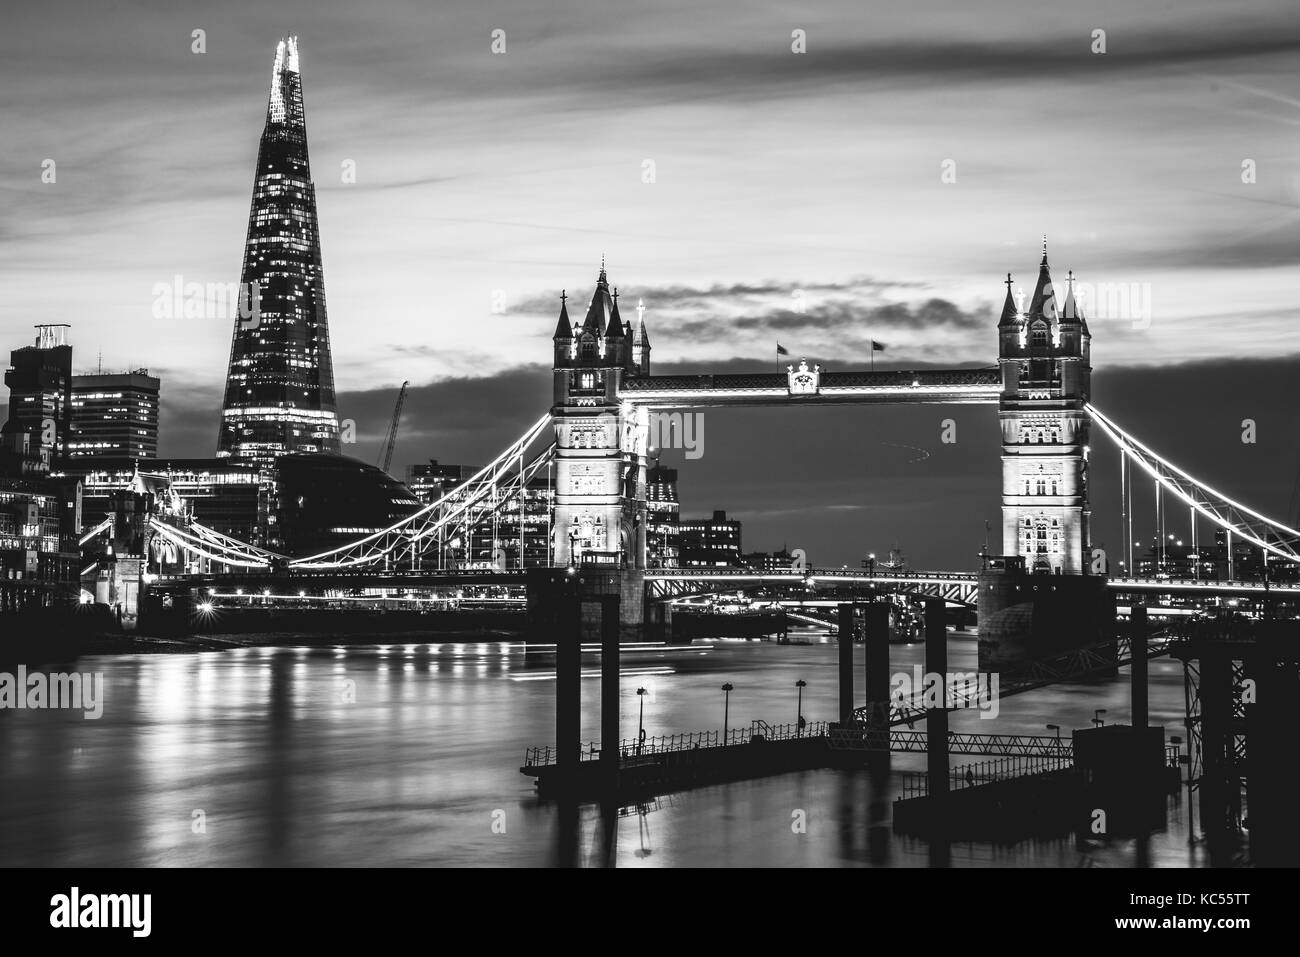 Themse, Tower Bridge, The Shard, night scene, illuminated, water view, Southwark, St Katharine's & Wapping, London, Stock Photo